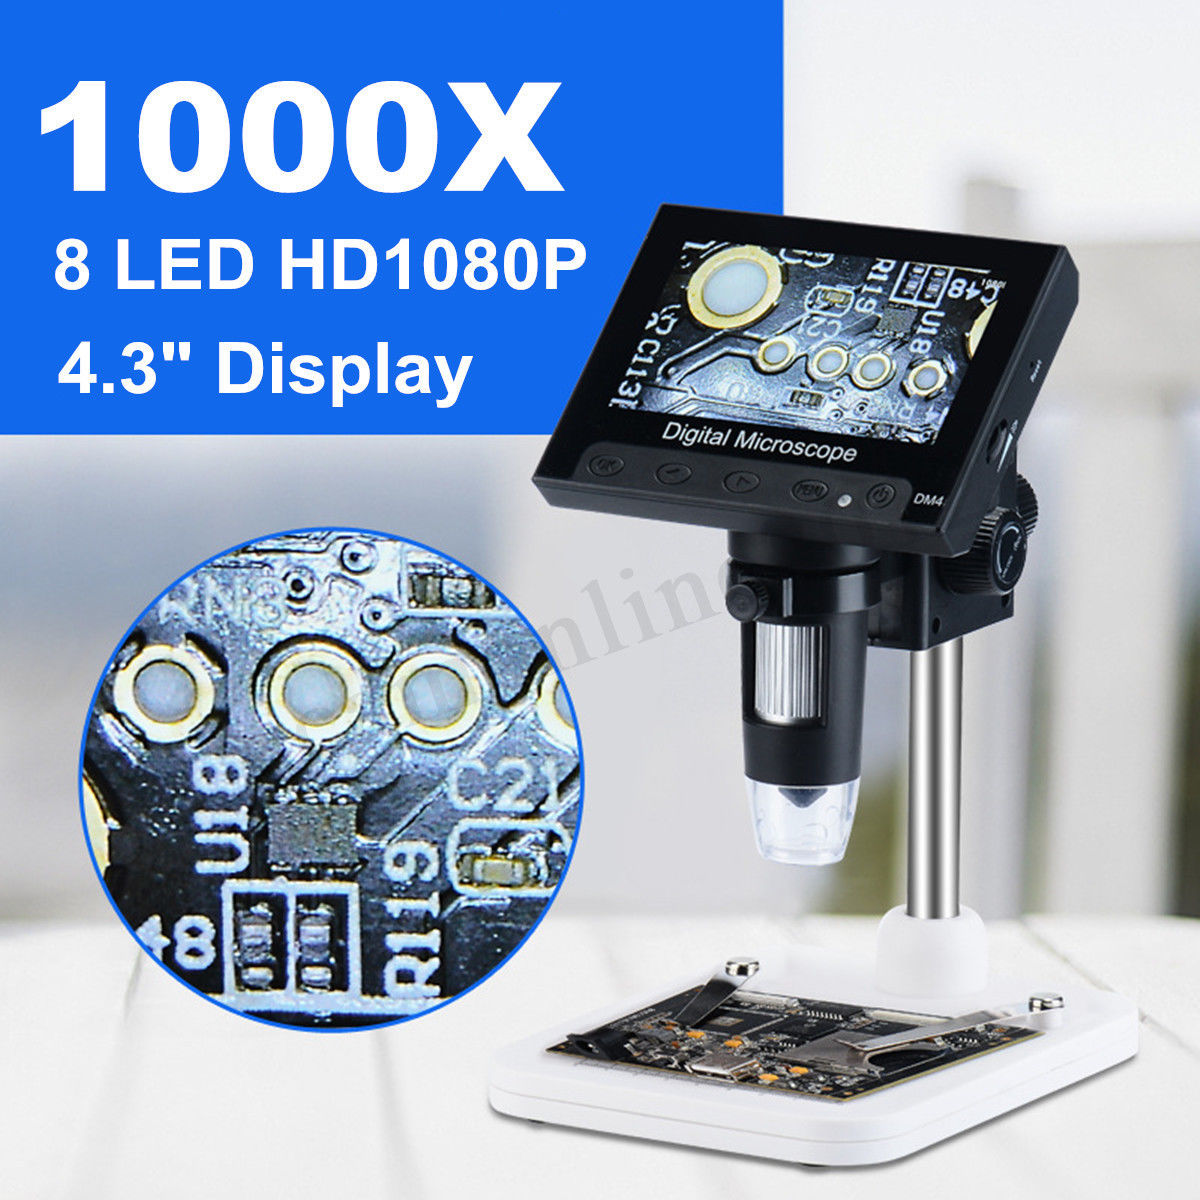 1000x 2.0MP USB Digital Electronic Microscope DM4 4.3